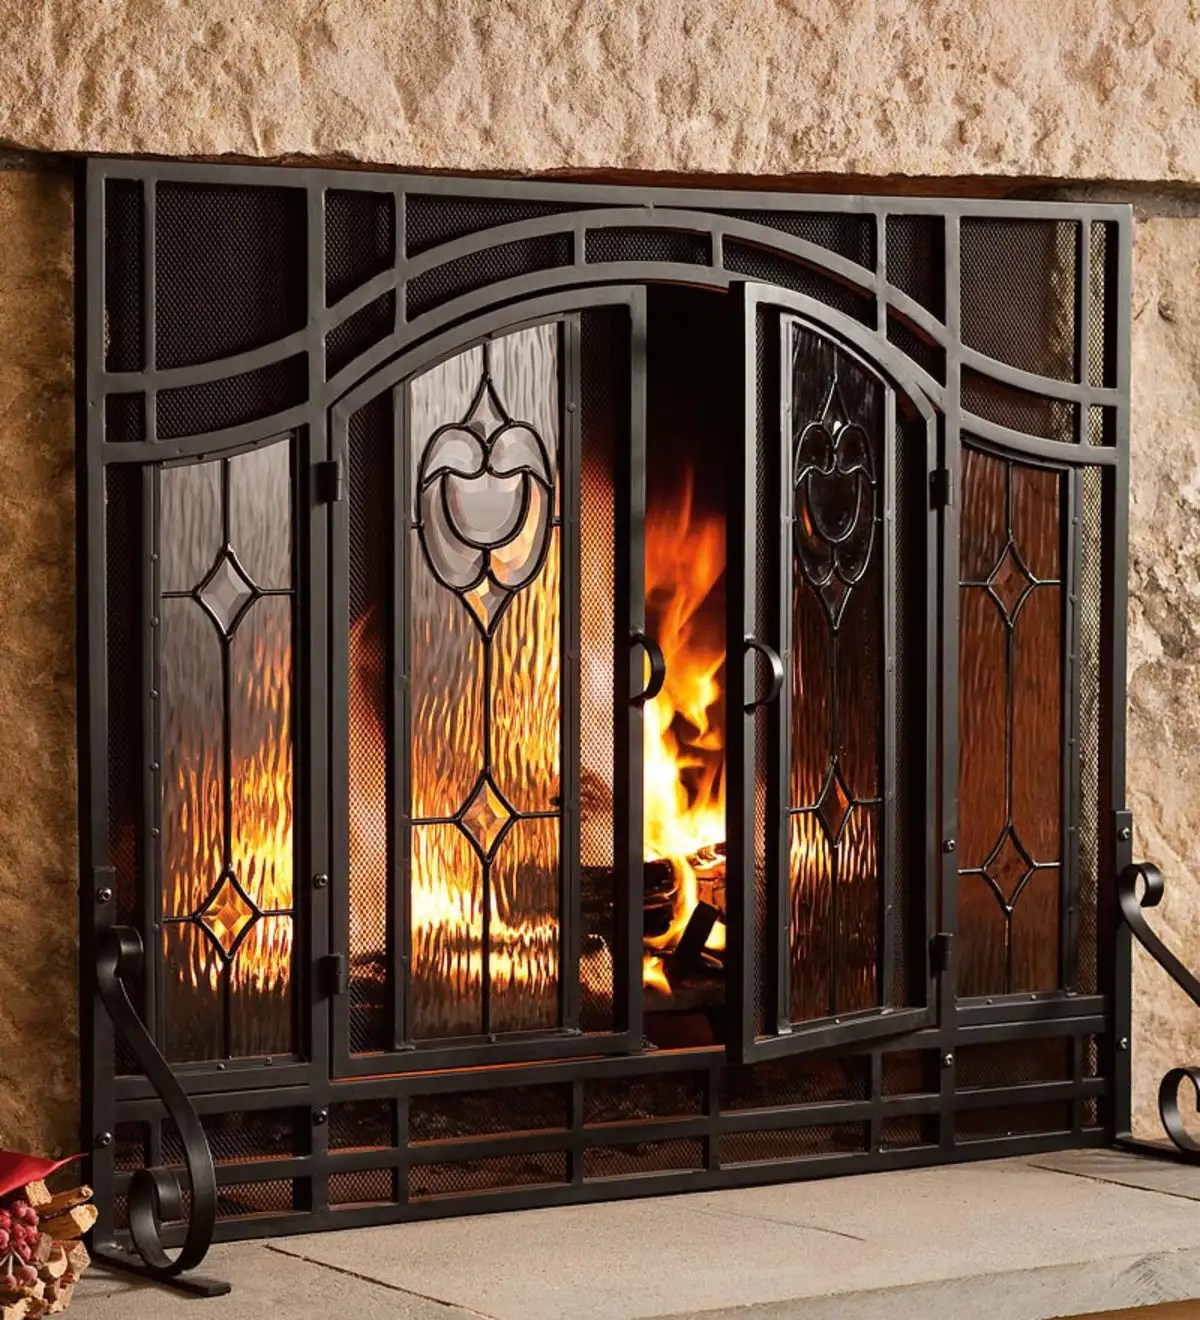 Glass Screen For Gas Fireplace Small Two Door Fireplace Screen With Glass Floral Panels Plowhearth